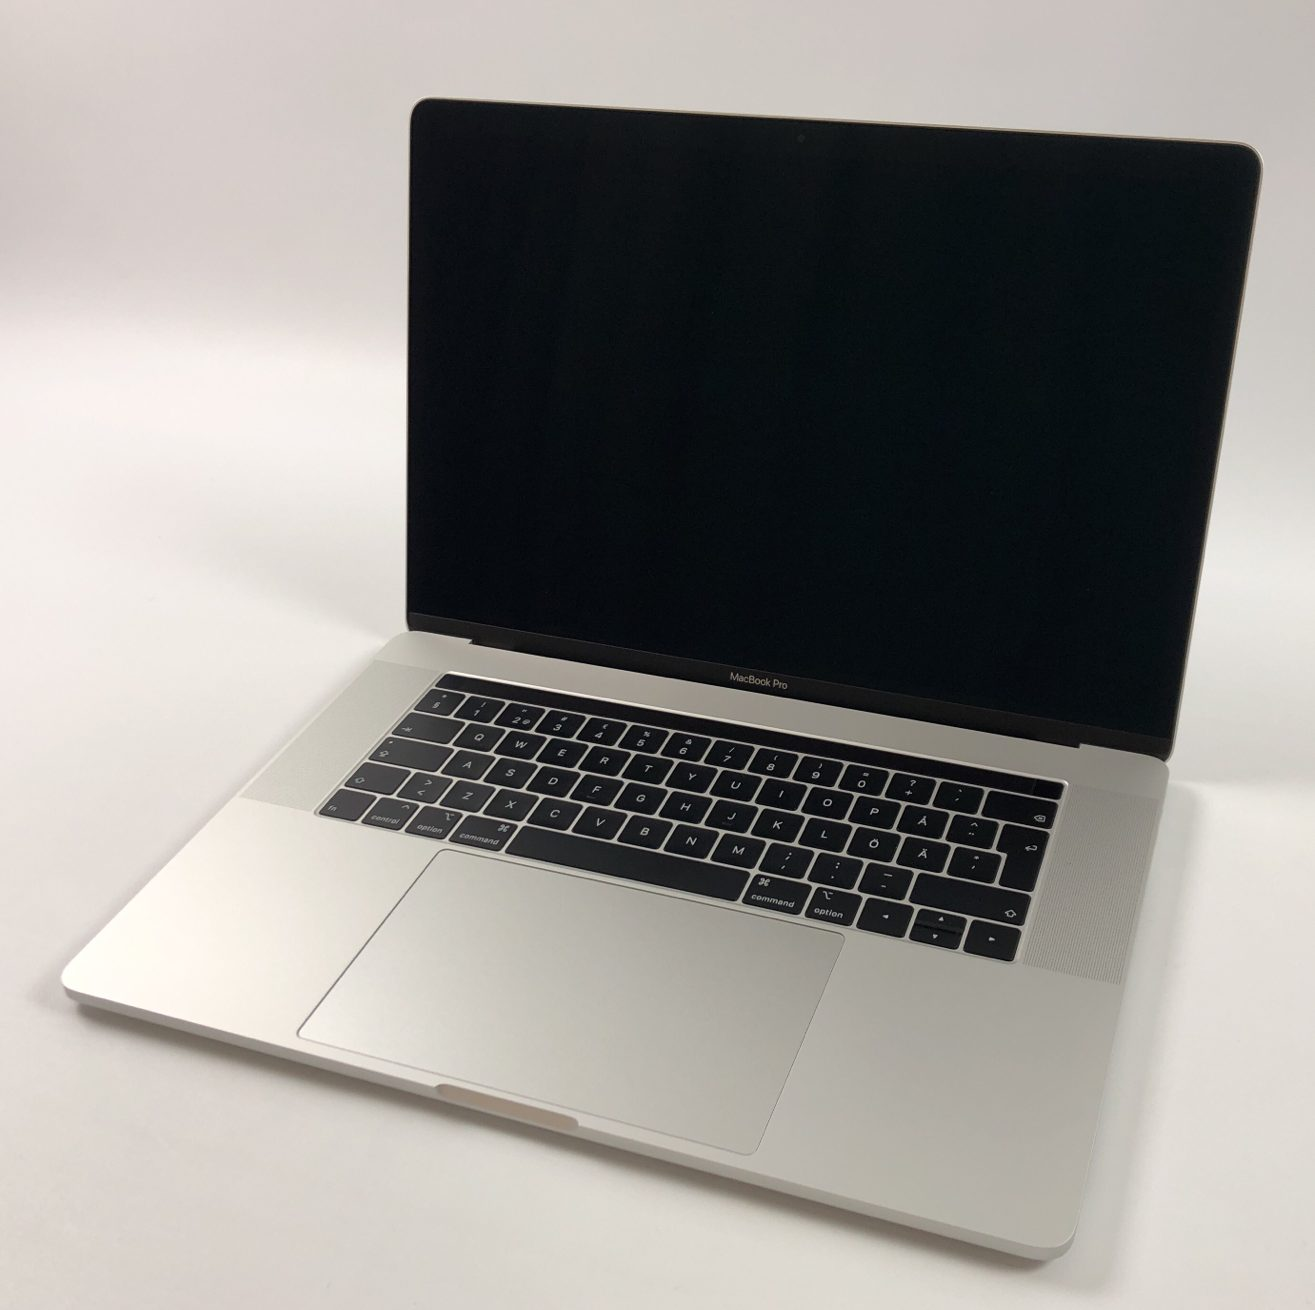 """MacBook Pro 15"""" Touch Bar Mid 2018 (Intel 6-Core i7 2.2 GHz 16 GB RAM 256 GB SSD), Silver, Intel 6-Core i7 2.2 GHz, 16 GB RAM, 256 GB SSD, bild 1"""